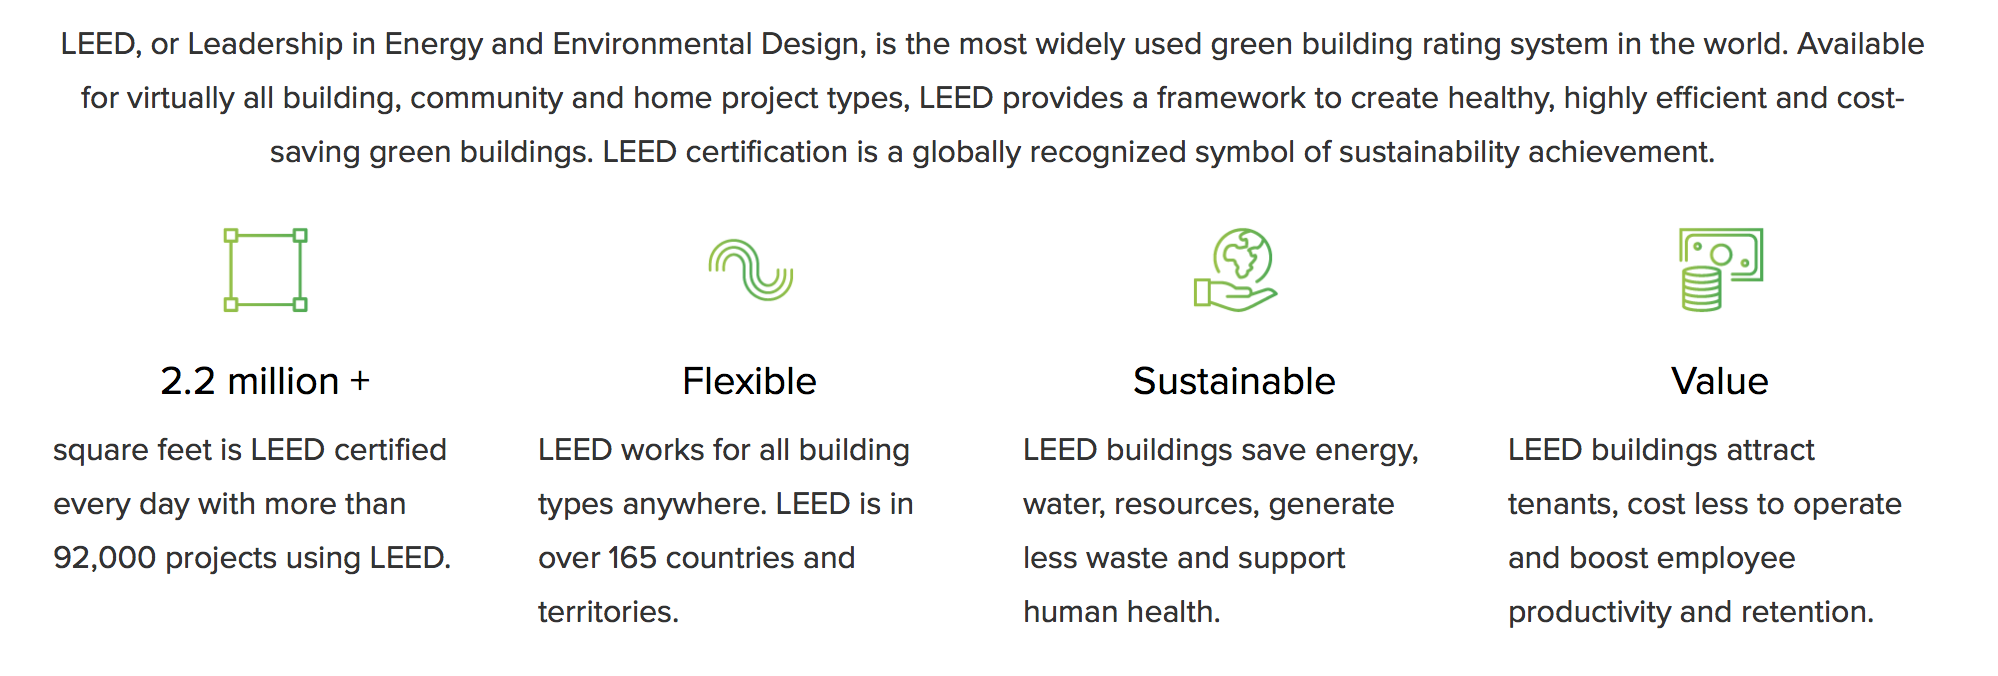 LEED, or Leadership in Energy and Environmental Design, is the most widely used green building rating system in the world. Available for virtually all building, community and home project types, LEED provides a framework to create healthy, highly efficient and cost-saving green buildings. It's a certification system for designers